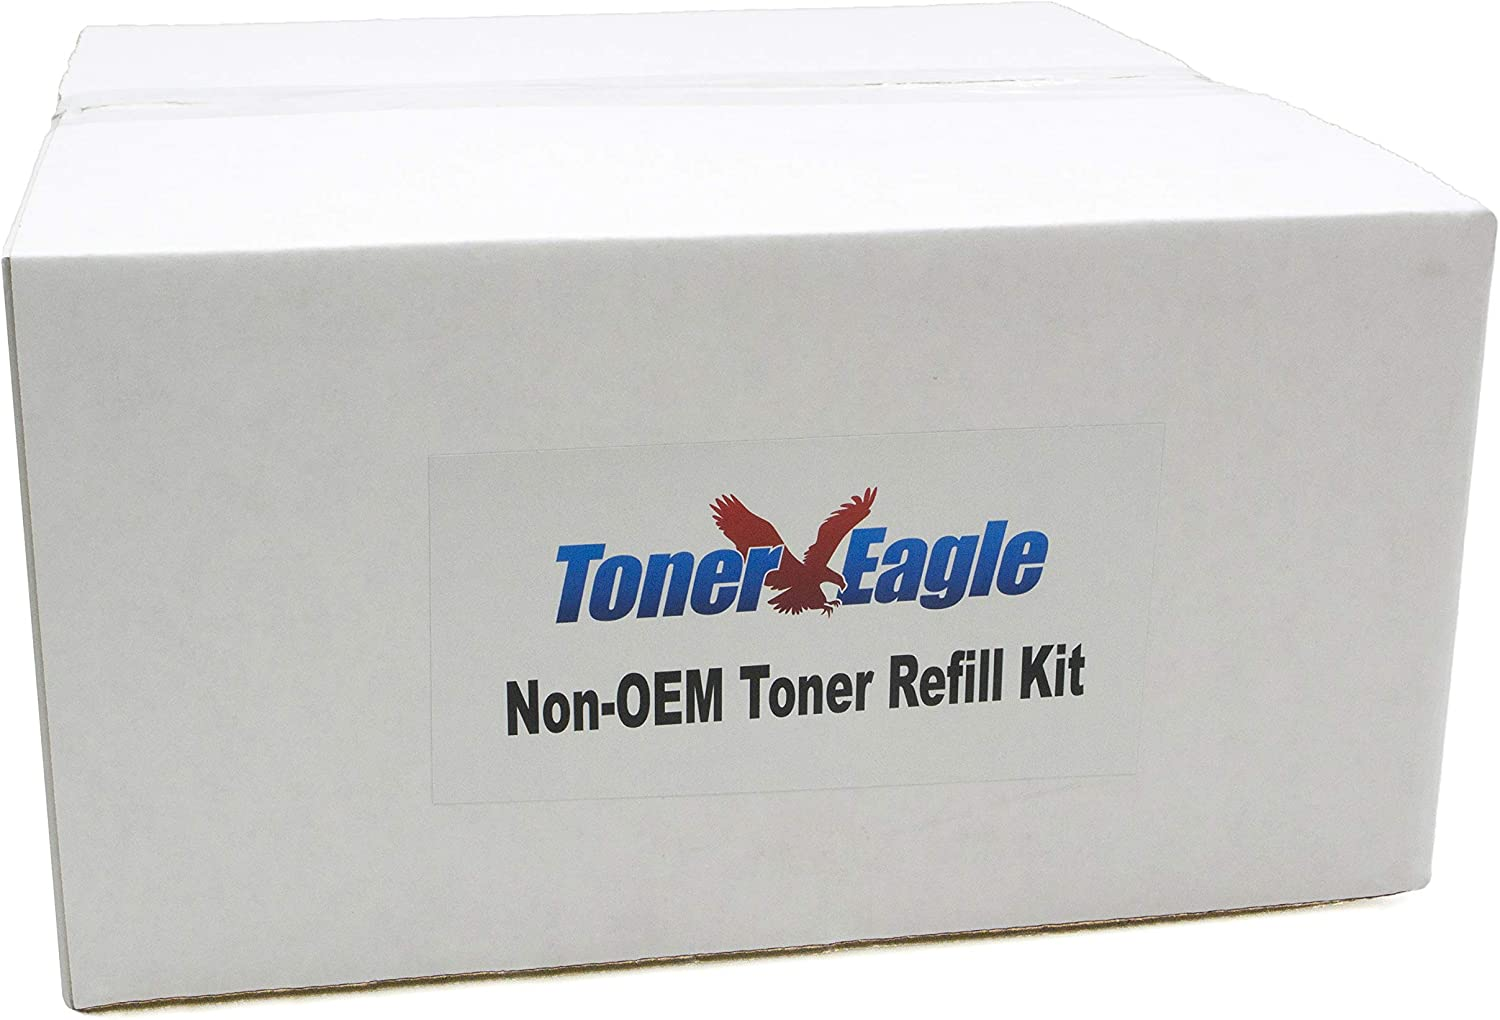 Toner Eagle Toner Refill Kit Compatible with HP 4350dtn 4350dtnsl with Chips [Black, 2-Pack]